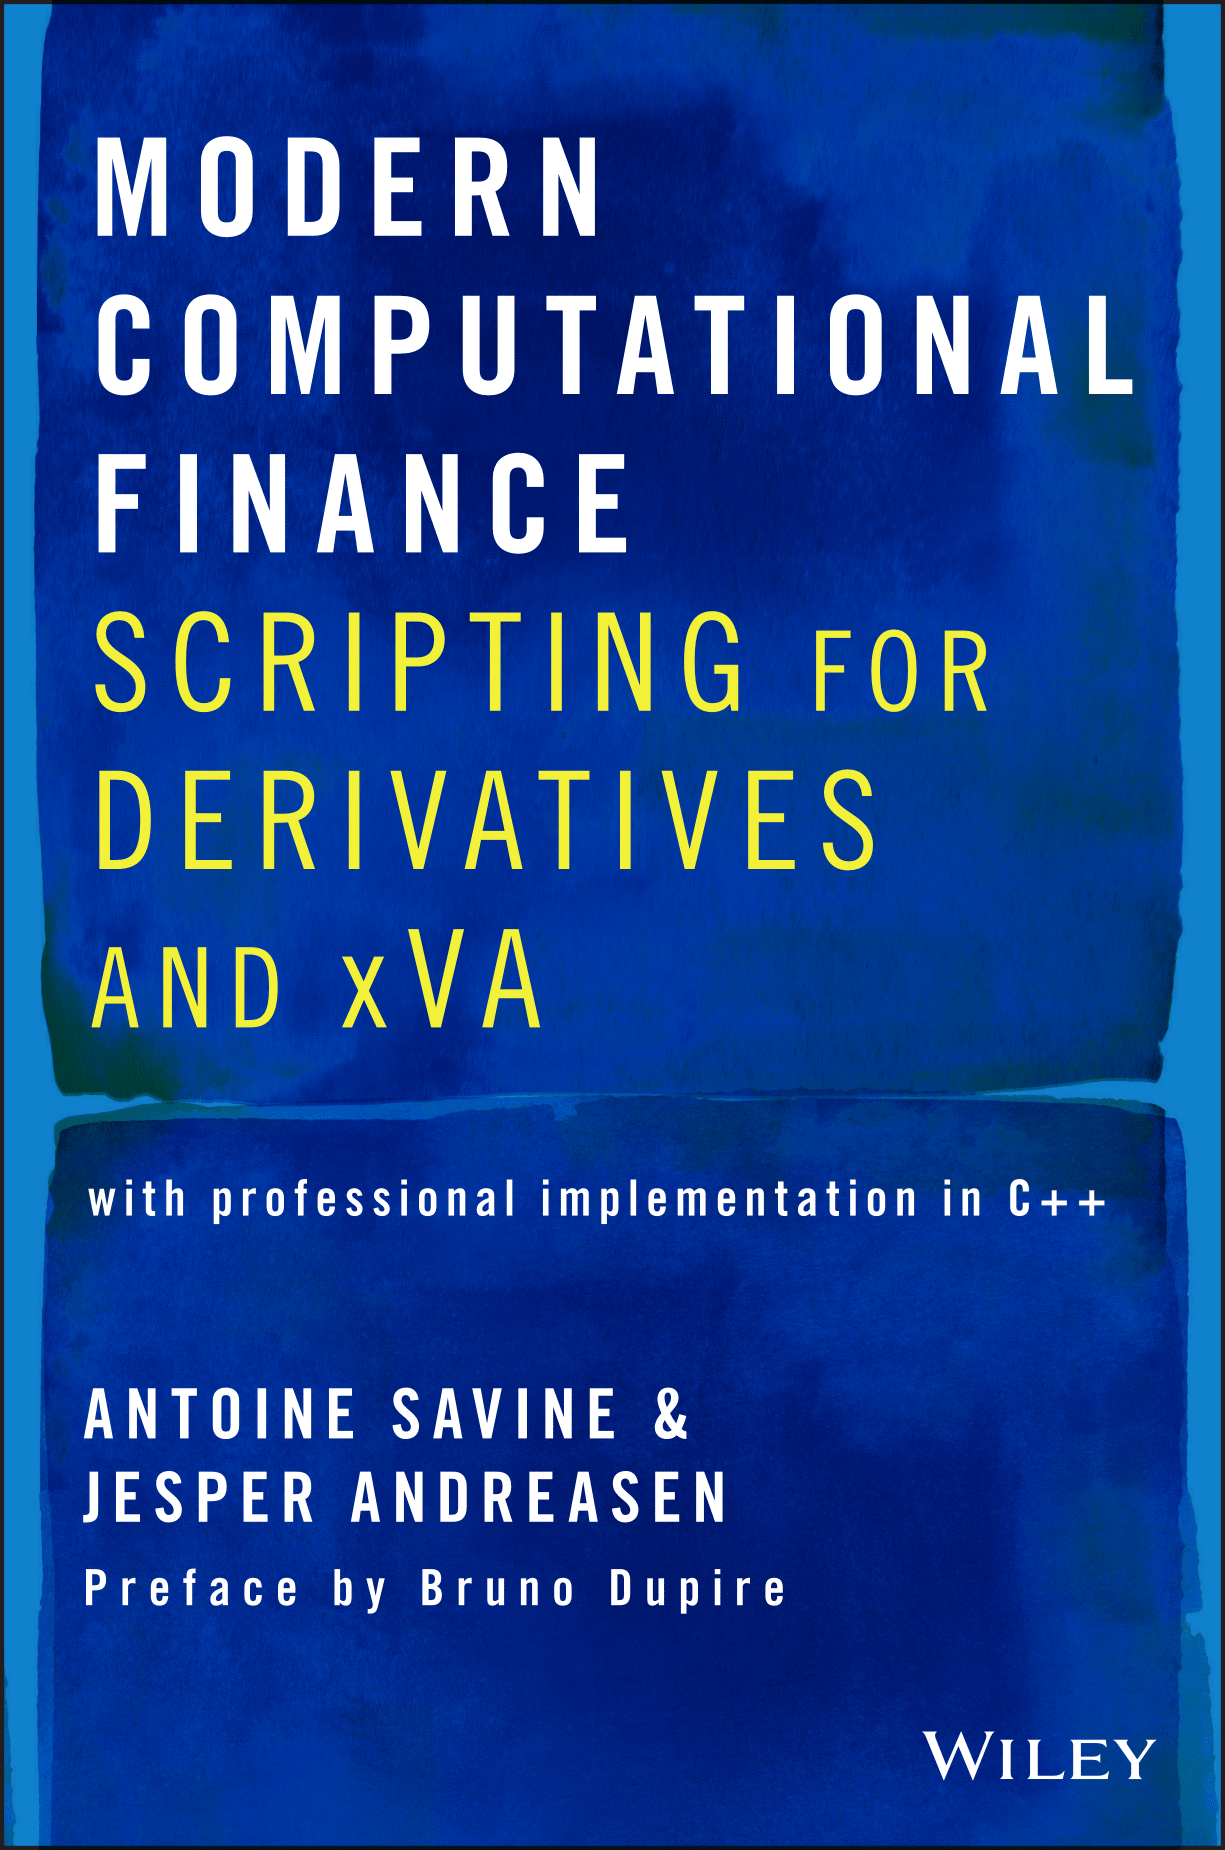 Complimentary Preview: Modern Computational Finance Volume 2